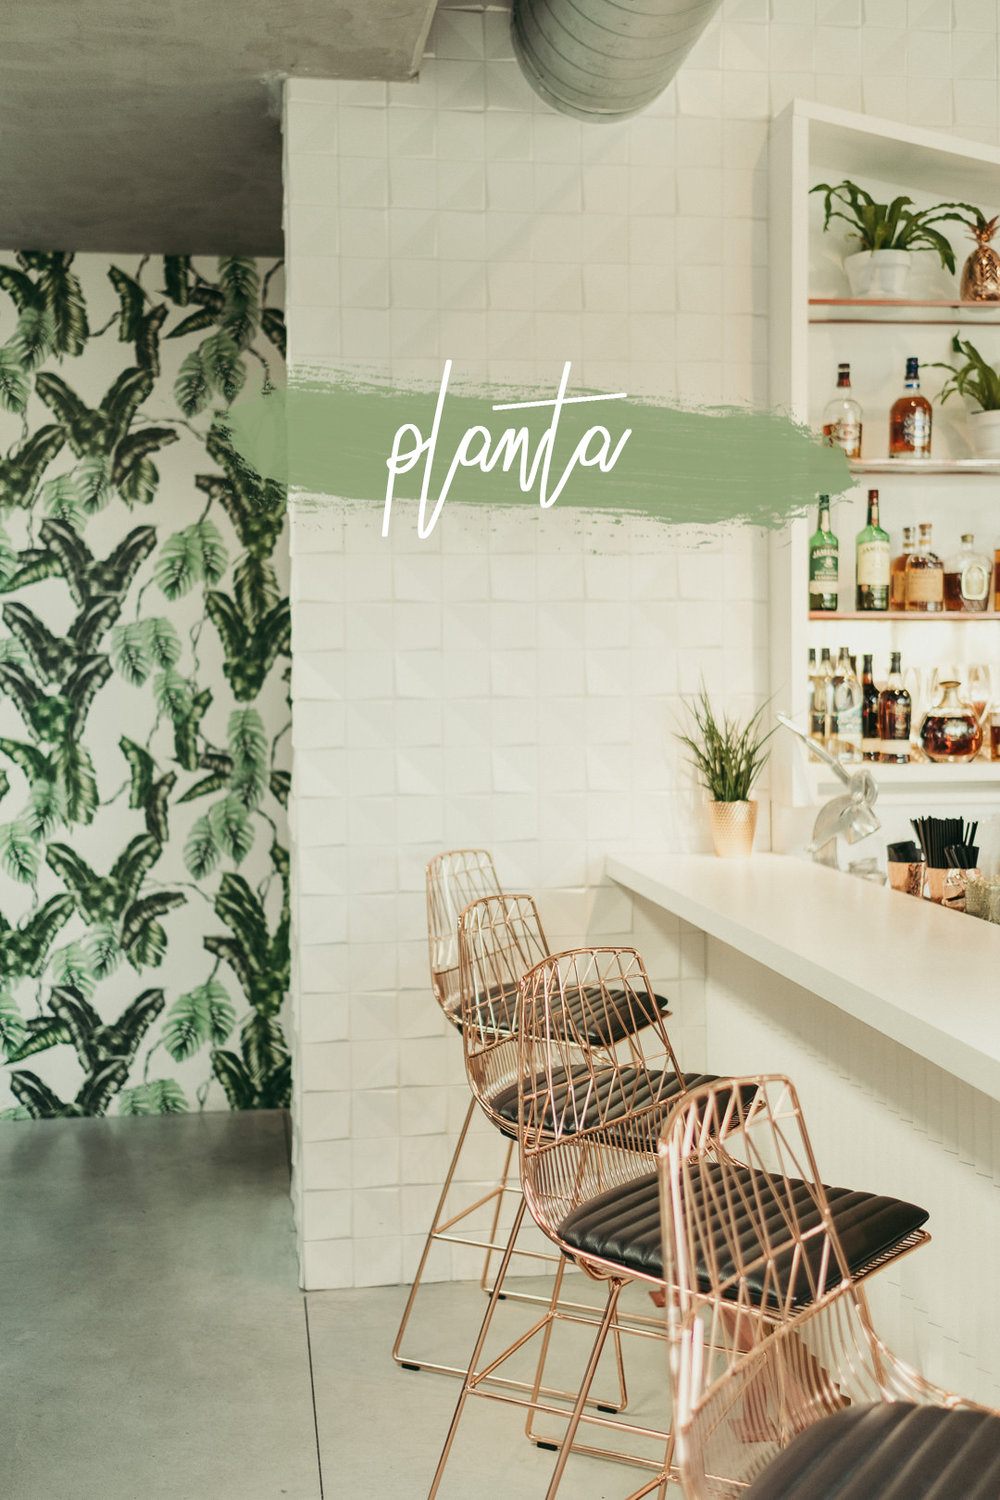 Planta - Miami Vegan Restaurant - Ali Happer Photo_32 copy.jpg